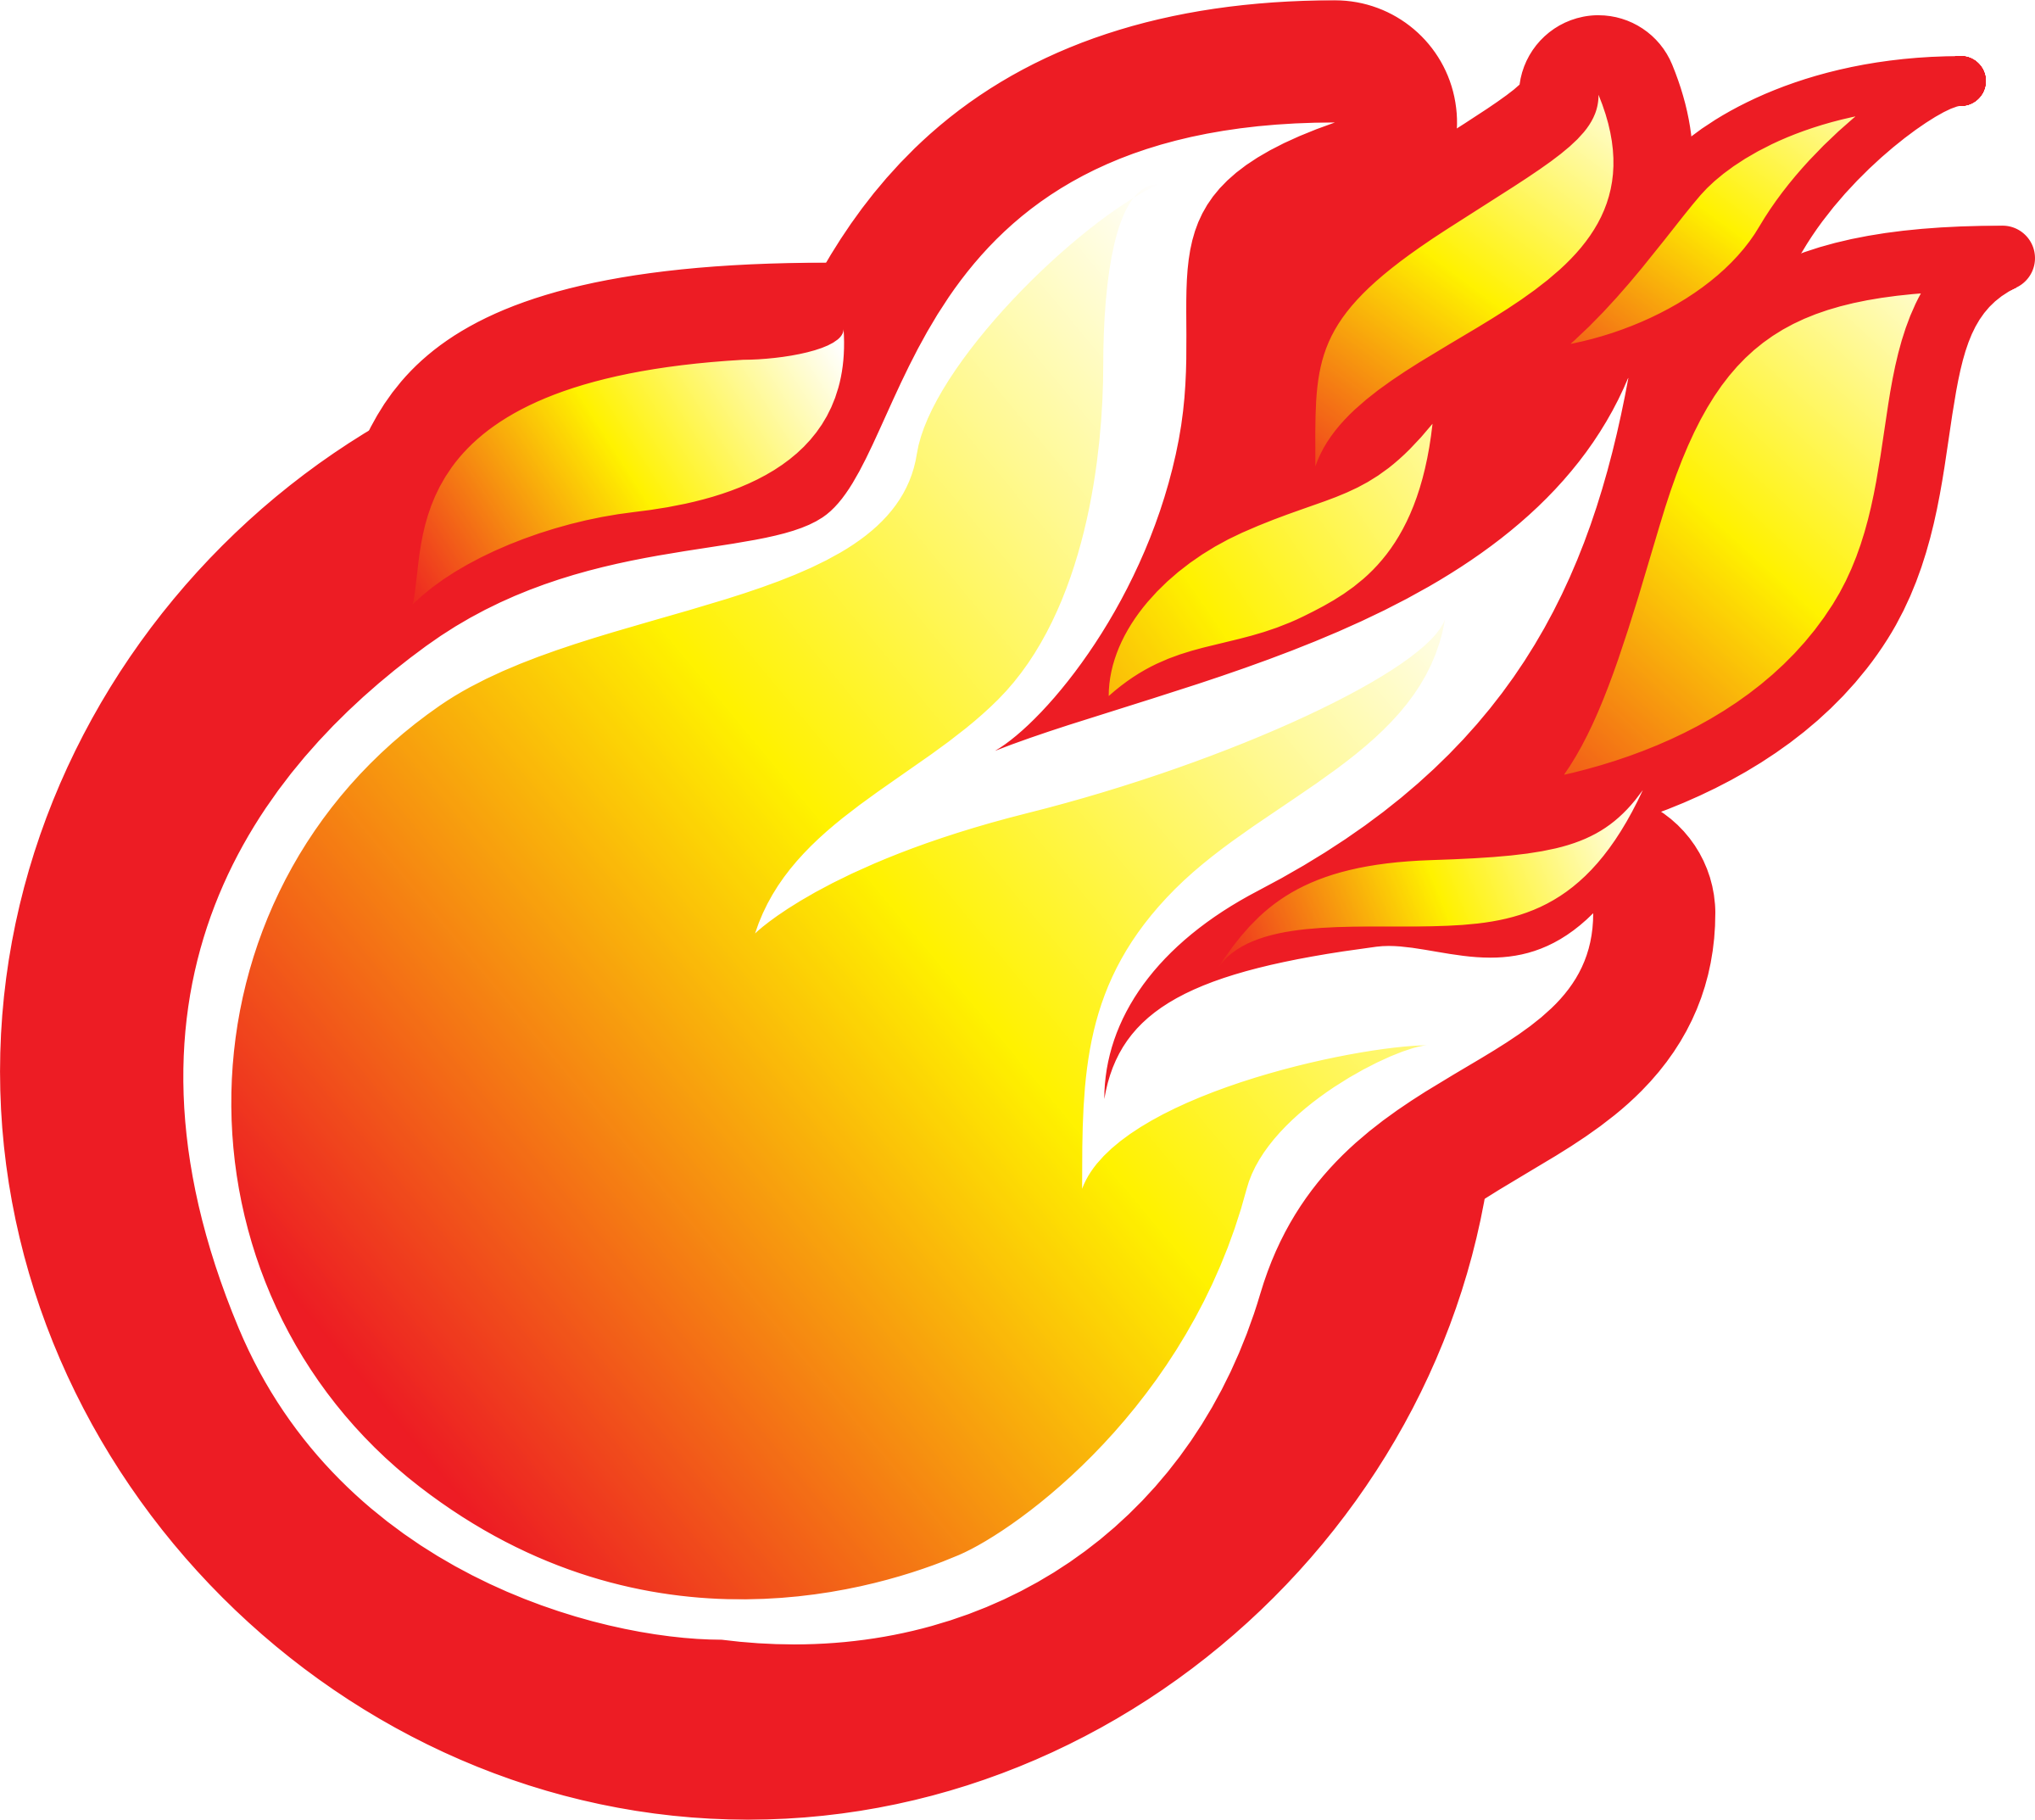 Flame fire clipart 6 image #6980.